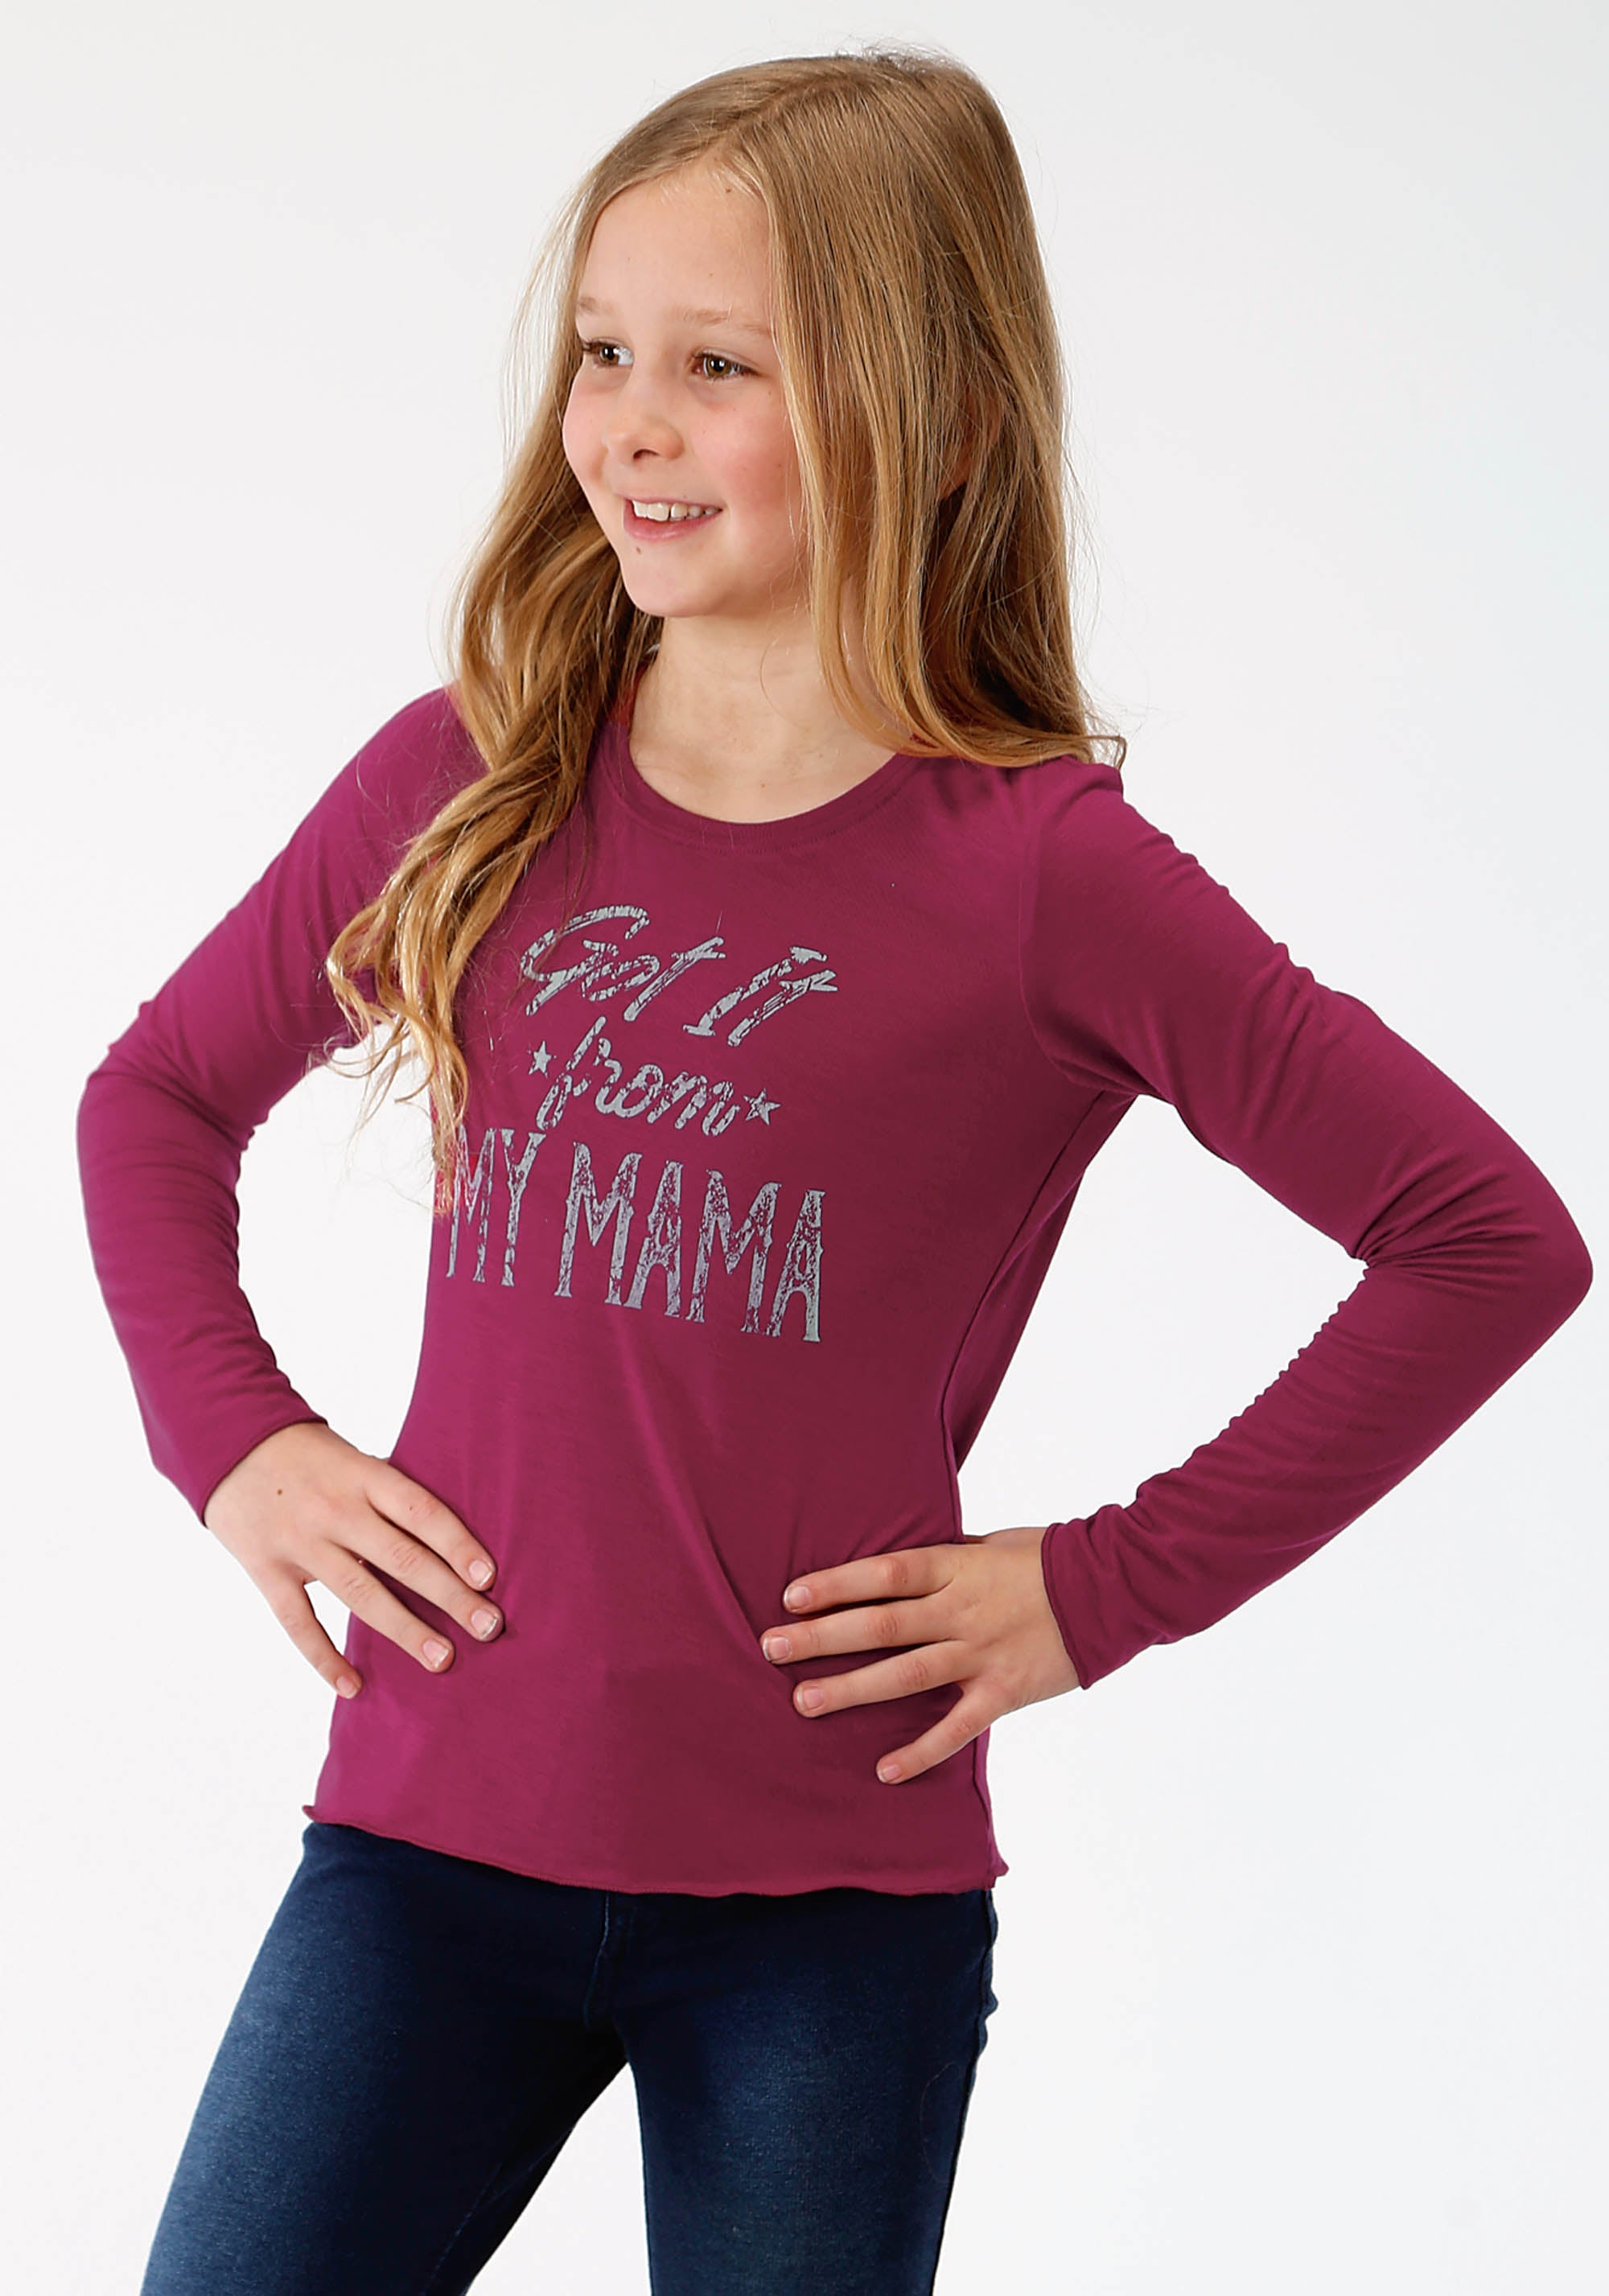 ROPER GIRLS RED 3675 POLY RAYON JERSEY SCOOP NECK TEE FIVE STAR GIRLS LONG SLEEVE